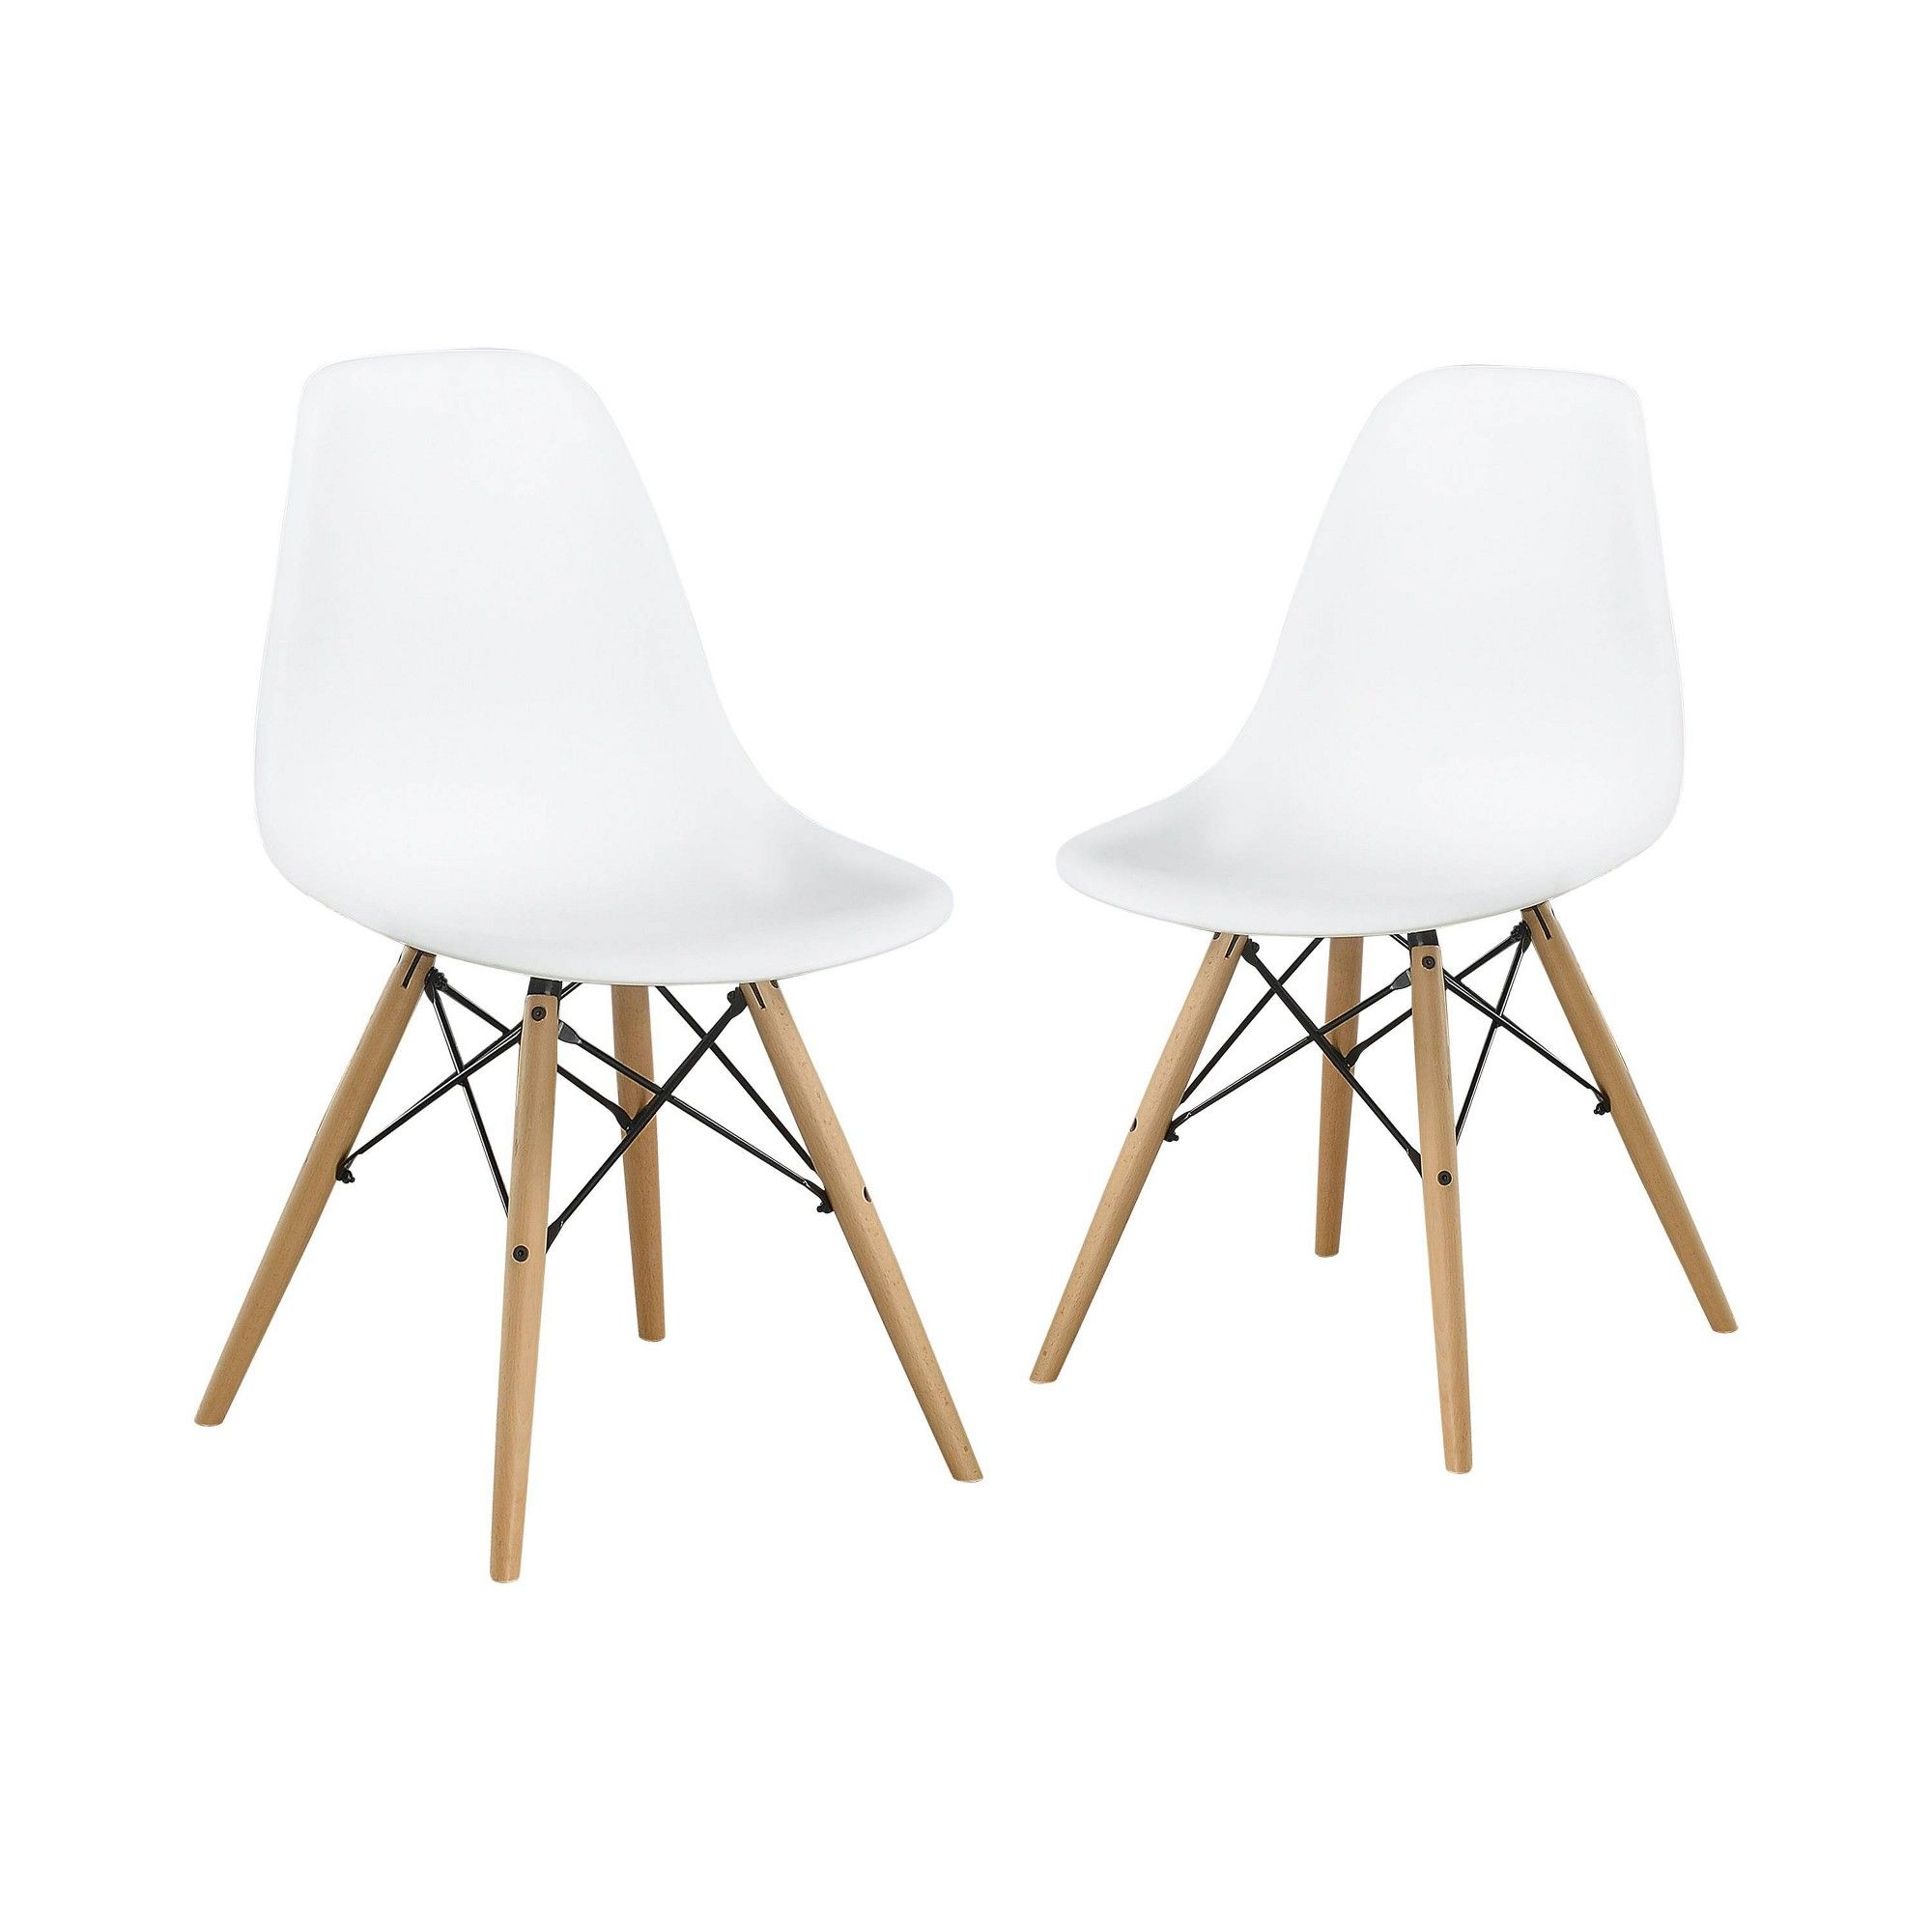 Set of 2 Hackney Contemporary Accent Chair White HOMES